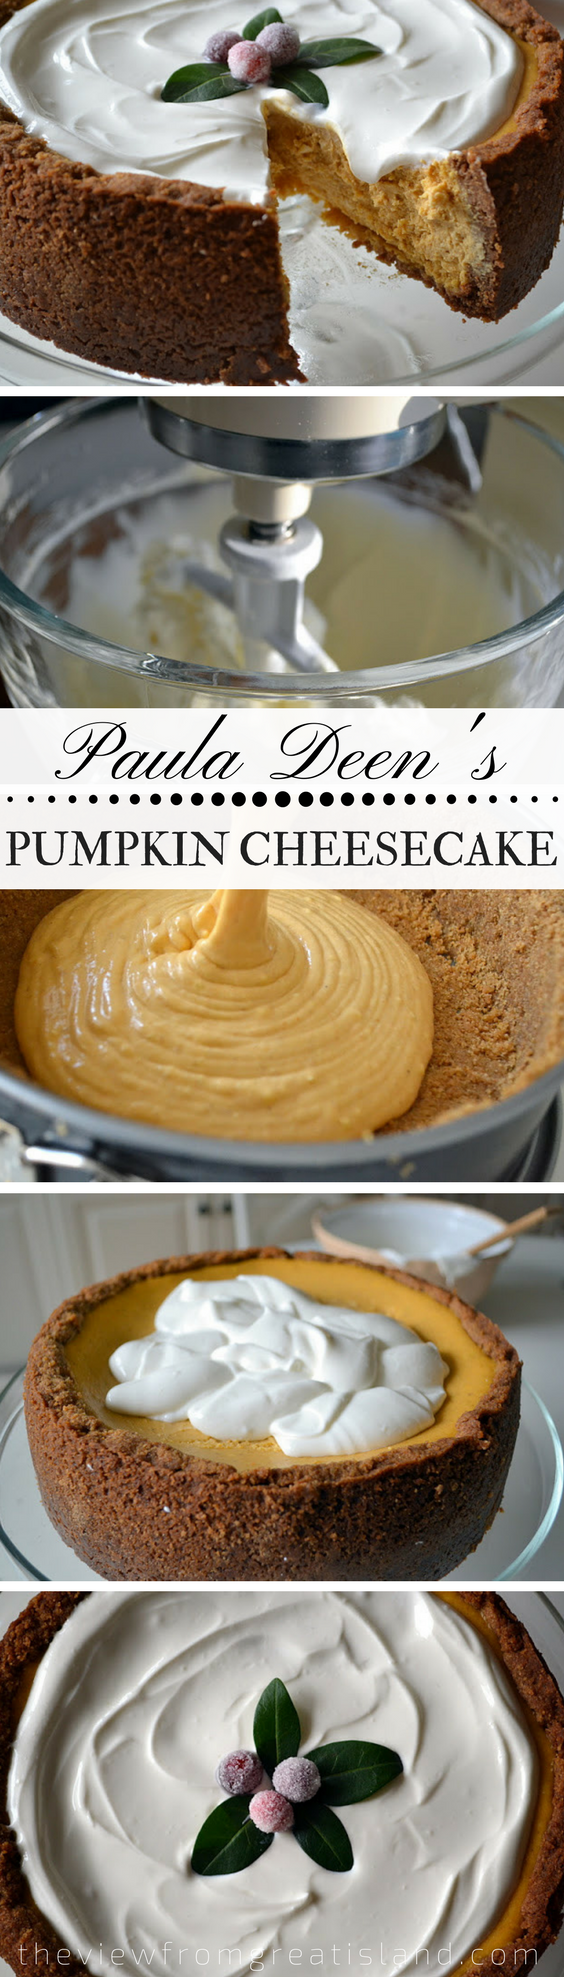 Paula Deen's Pumpkin Cheesecake ~ this mile high, super creamy cheesecake is a spectacular way to end a holiday meal! #cheesecake #pumpkincheesecake #bestcheesecake #recipe #PaulaDeen #cake #Thanksgivingdessert #Christmasdessert #holidaydessert